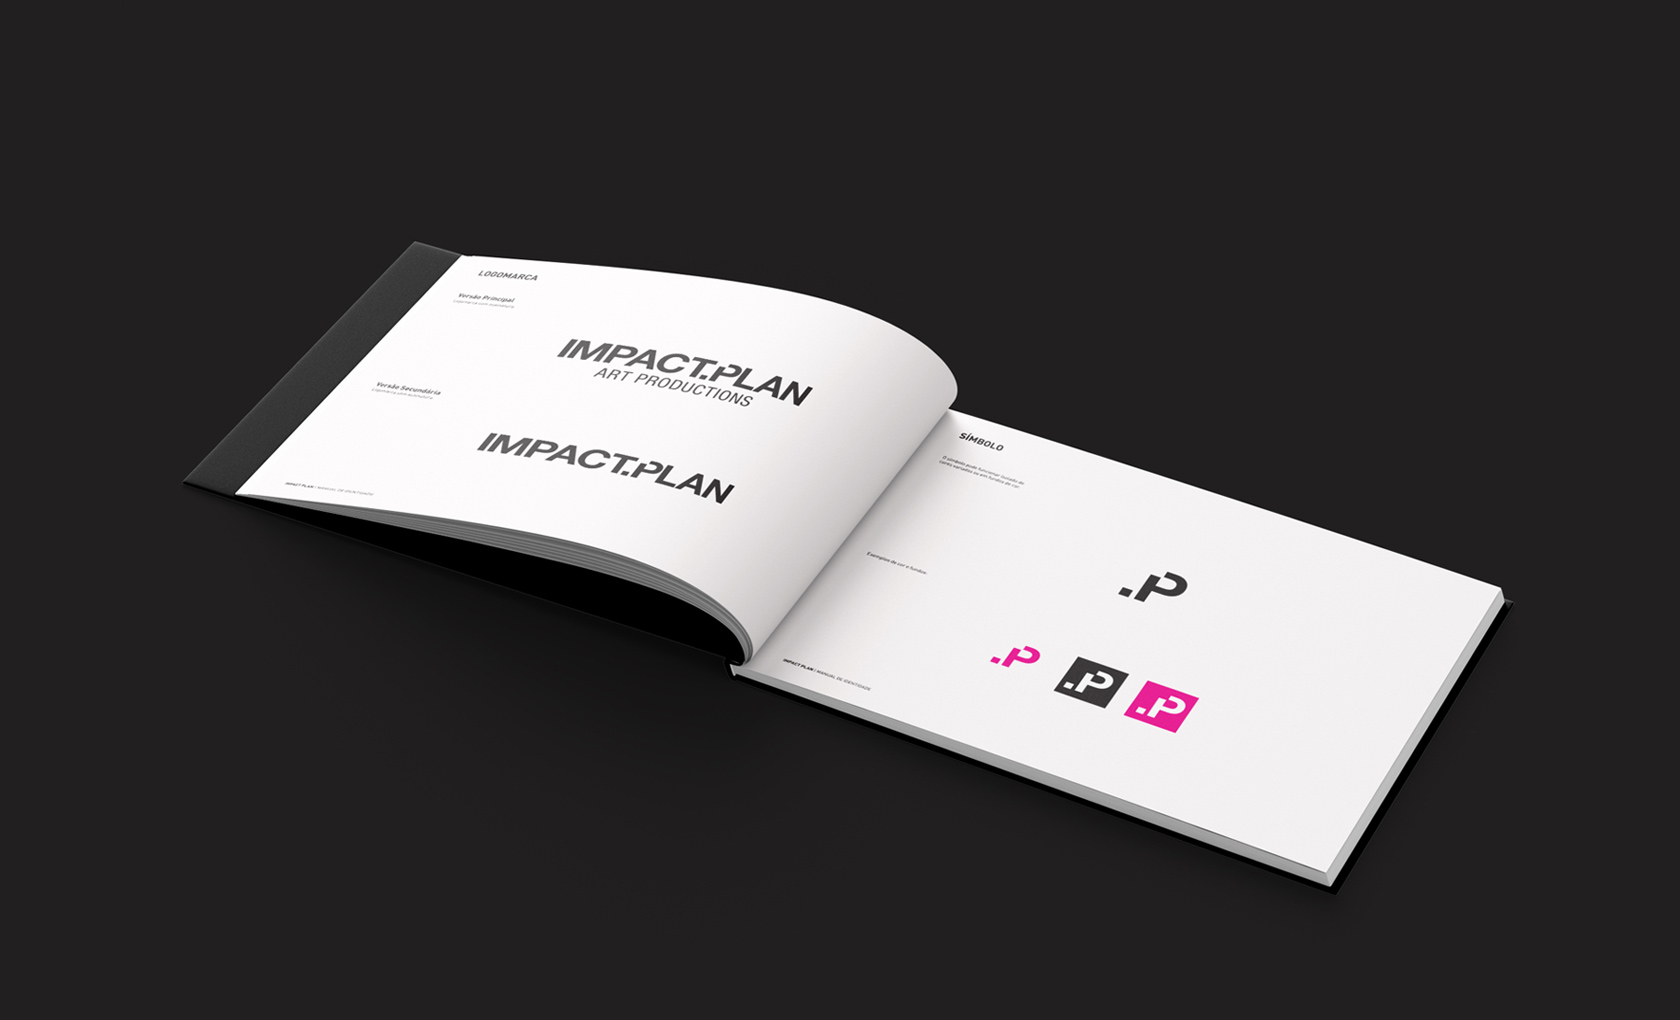 M&A Creative Agency - Impact Plan Art Productions4.jpg